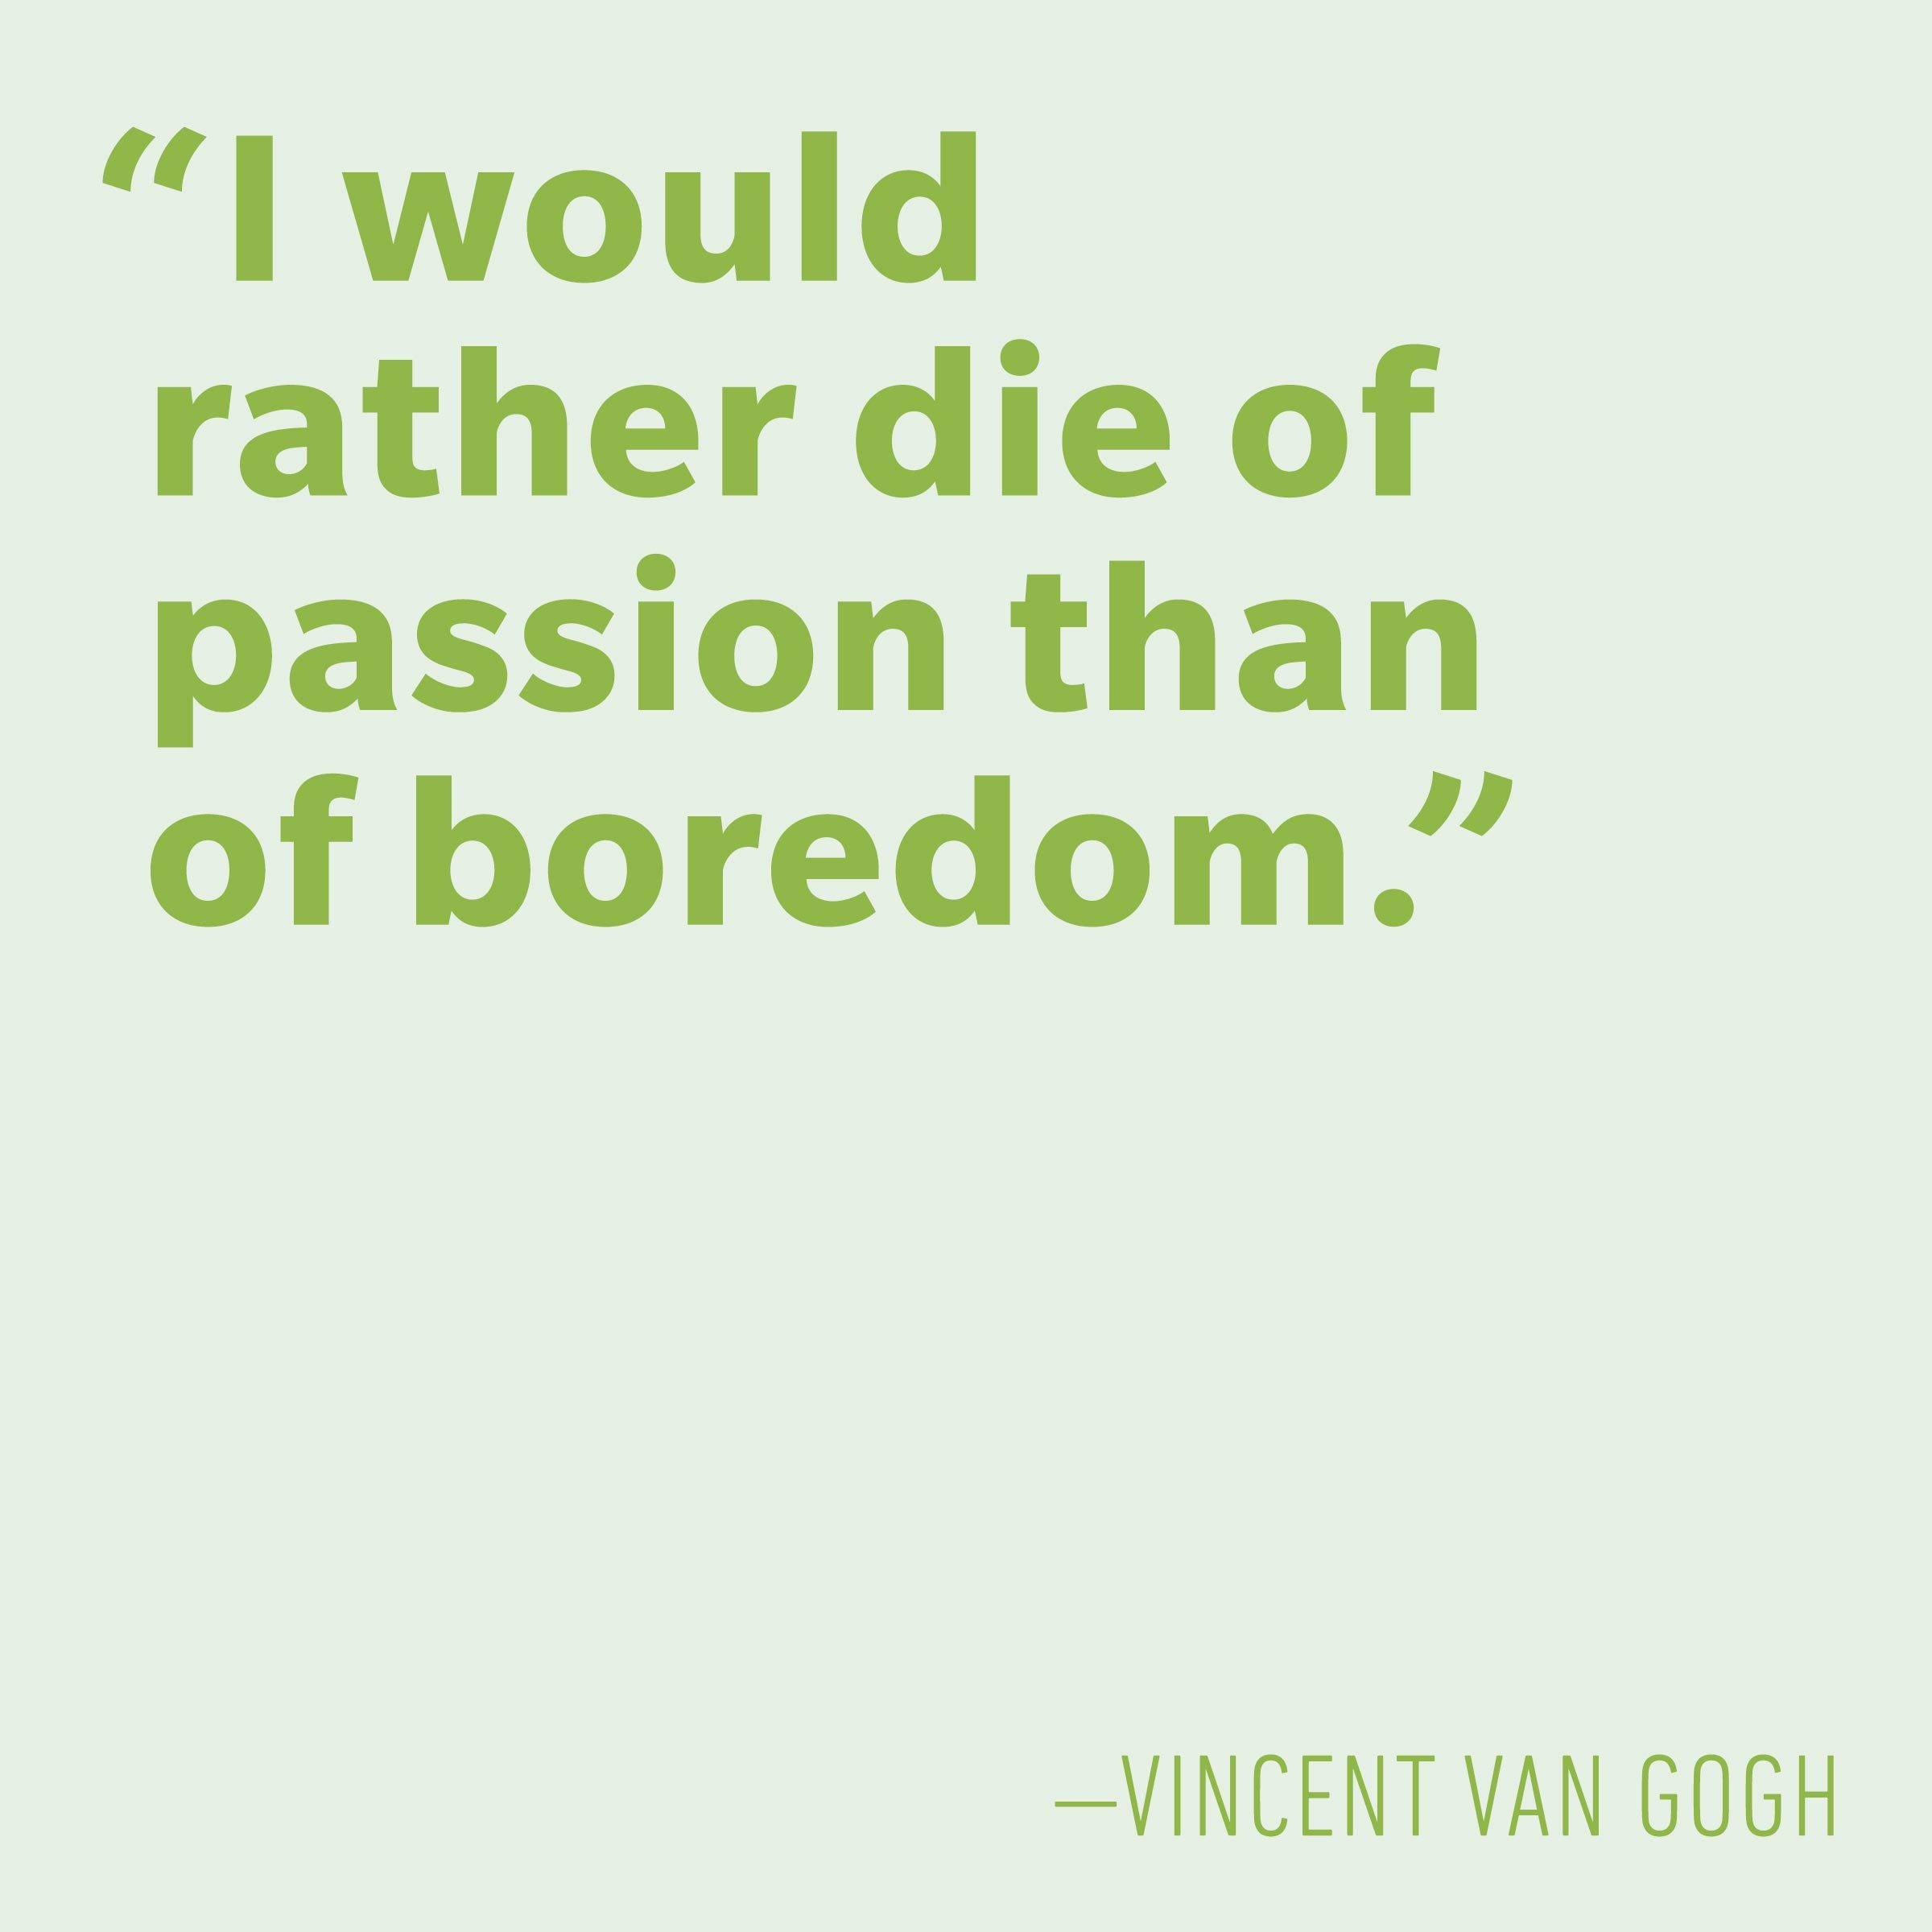 Motivational quotes - Vincent van Gogh